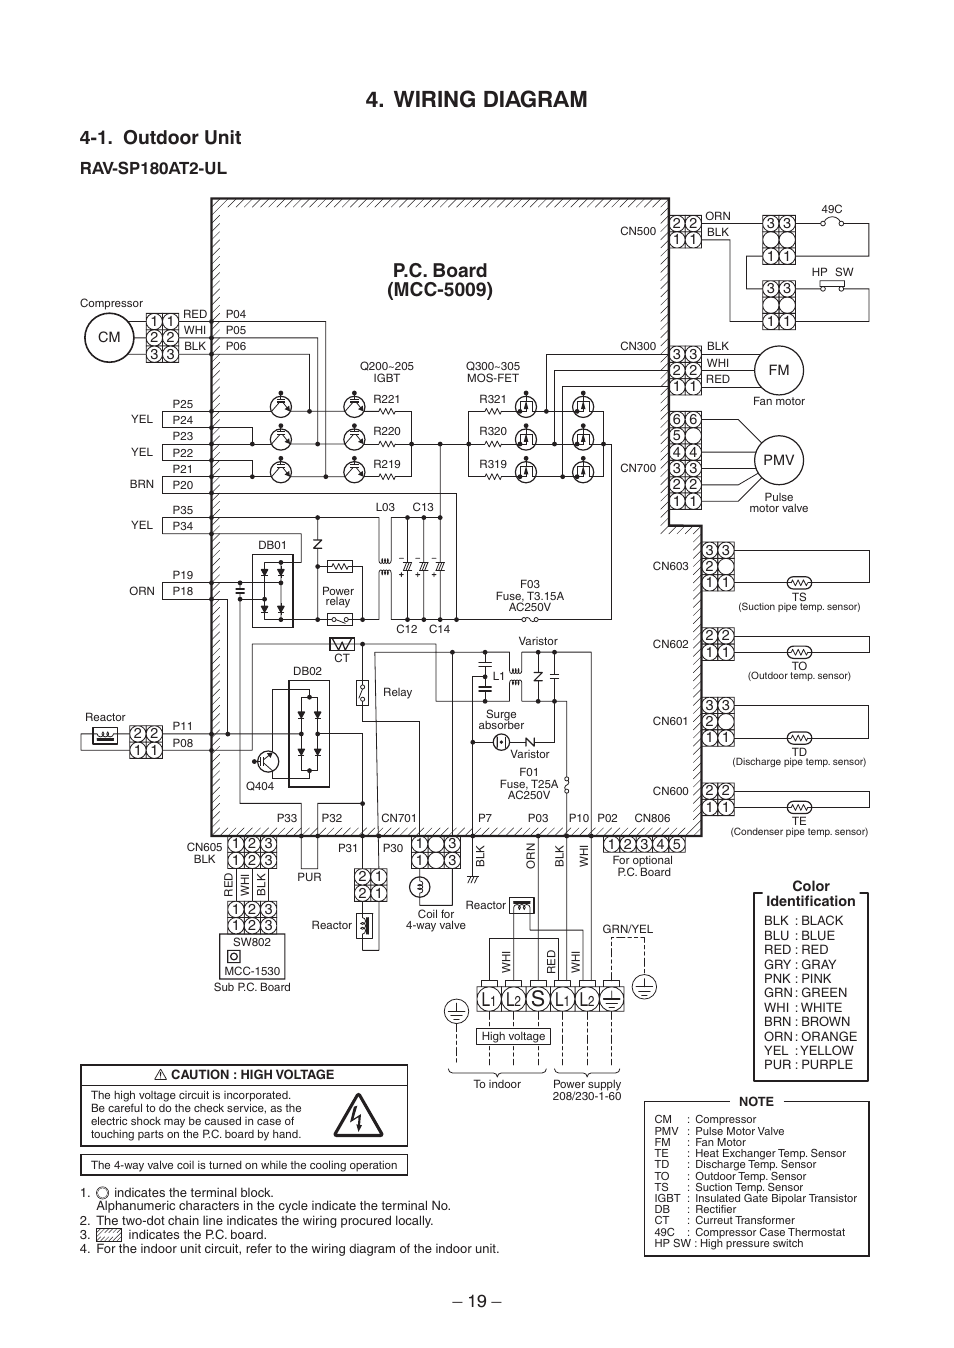 hight resolution of toshiba wiring diagram wiring diagram datatoshiba connection diagrams wiring diagram tutorial toshiba refrigerator wiring diagram toshiba